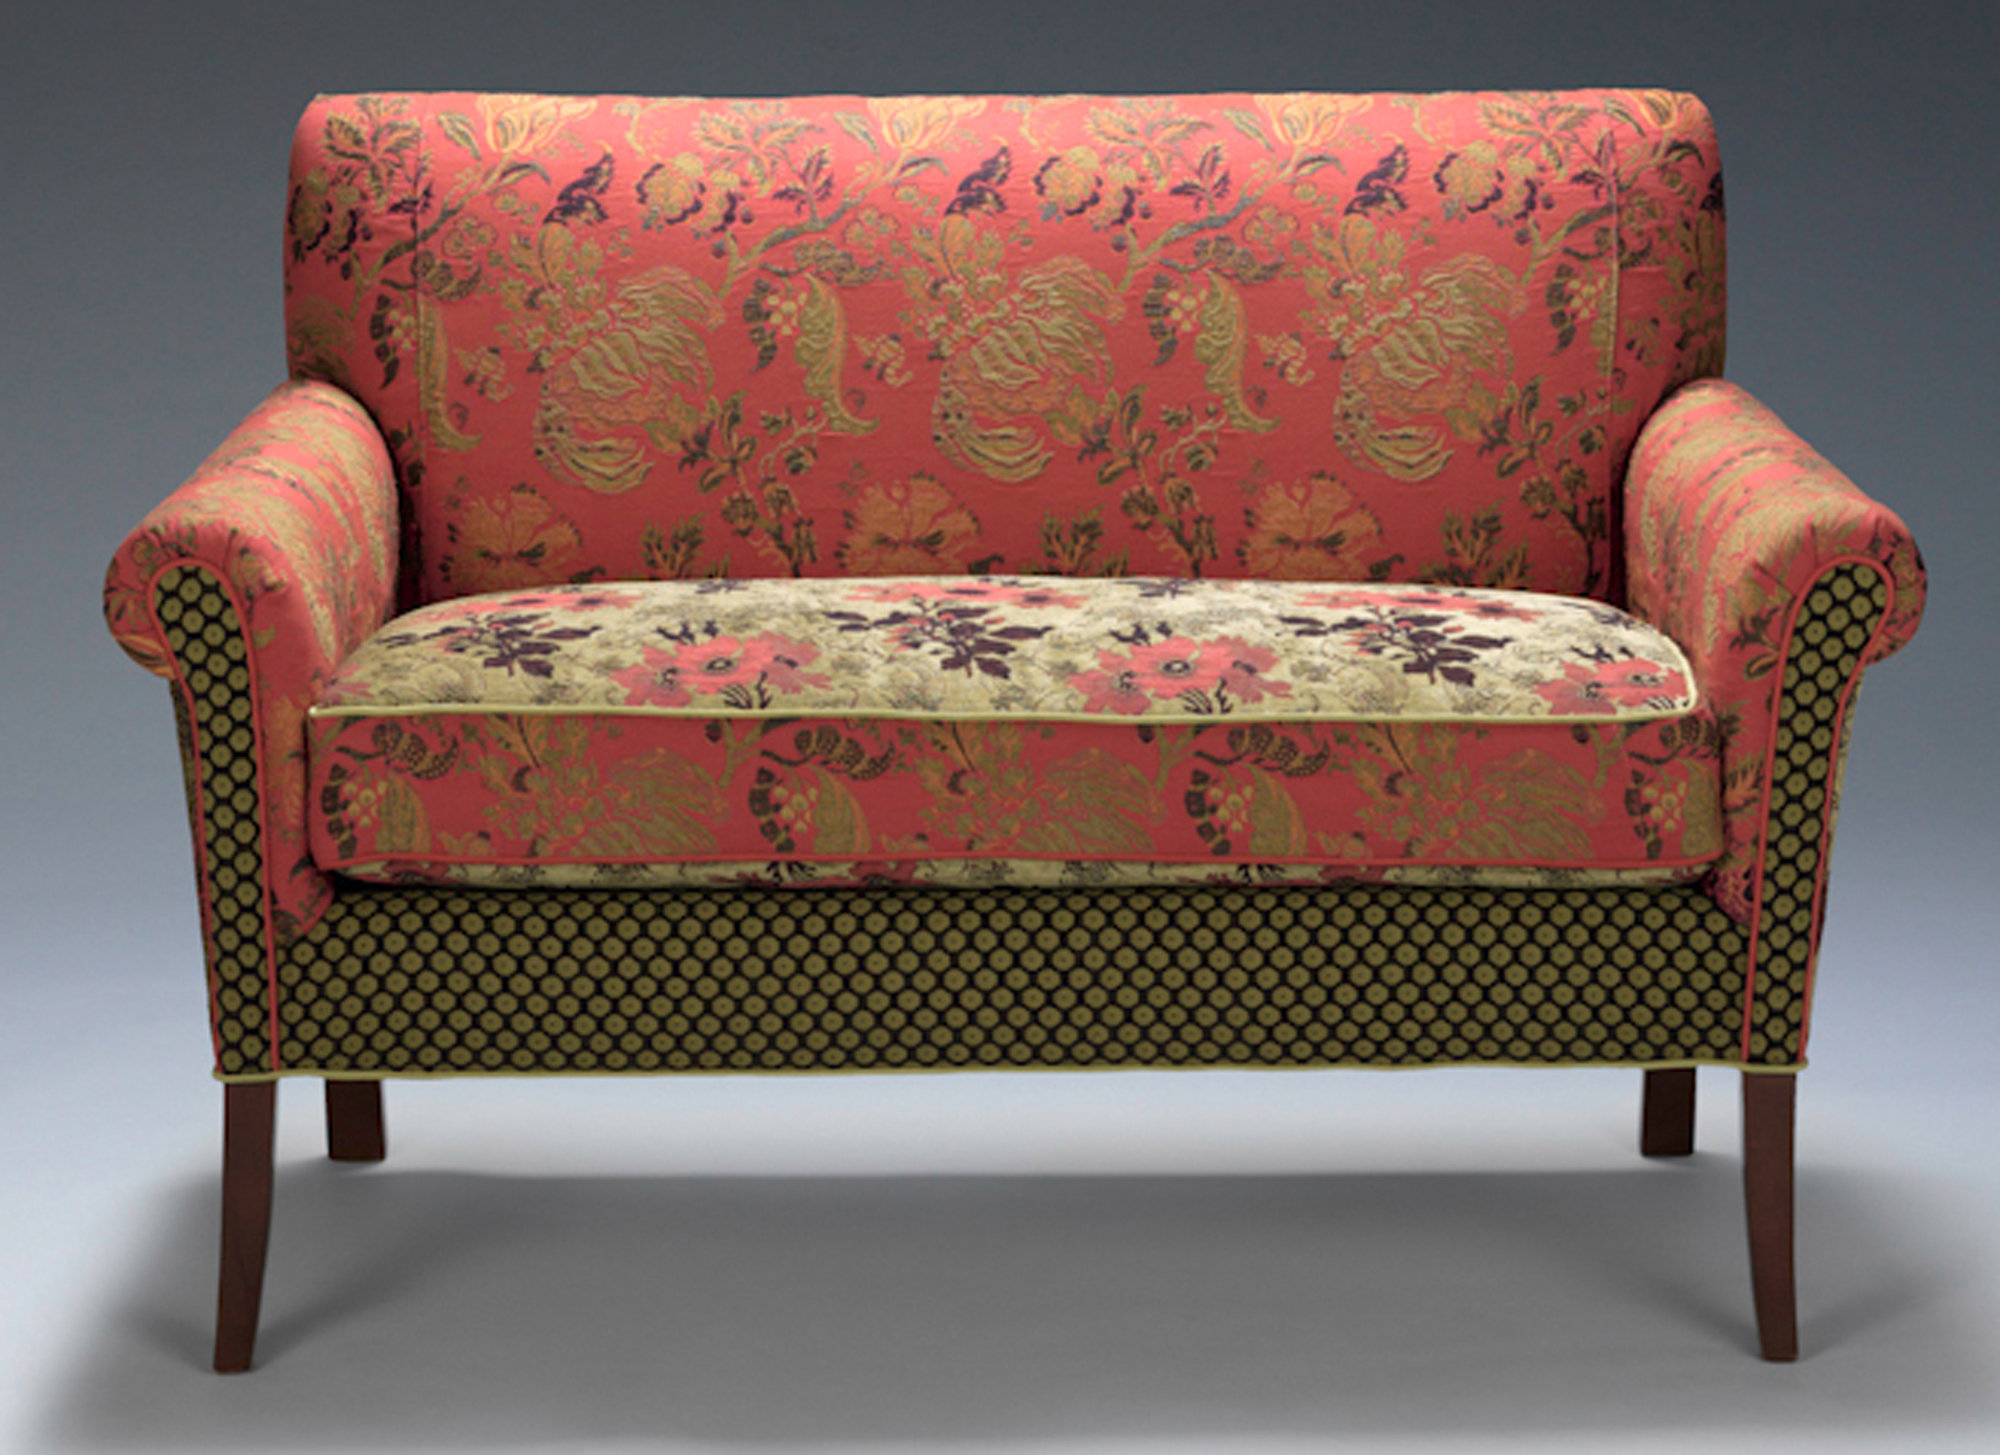 Salon Settee in Melody Rustic by Mary Lynn OShea  : upholsteredsofal from www.artfulhome.com size 2000 x 1455 jpeg 470kB